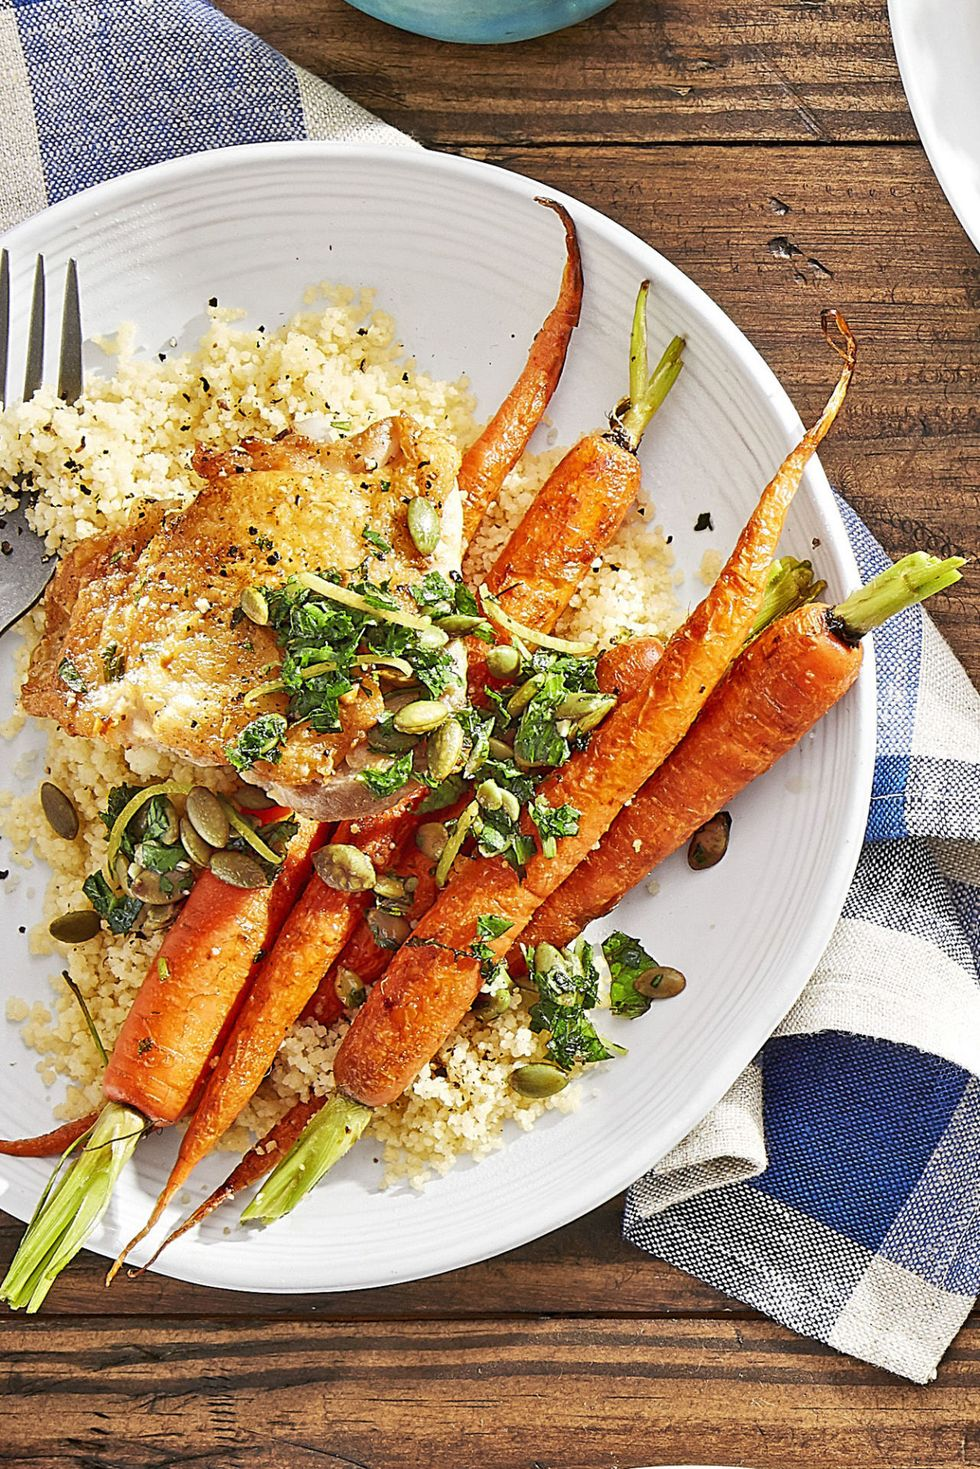 25 Easy Healthy Dinner Recipes - Crispy Chicken with Roasted Carrots and Couscous